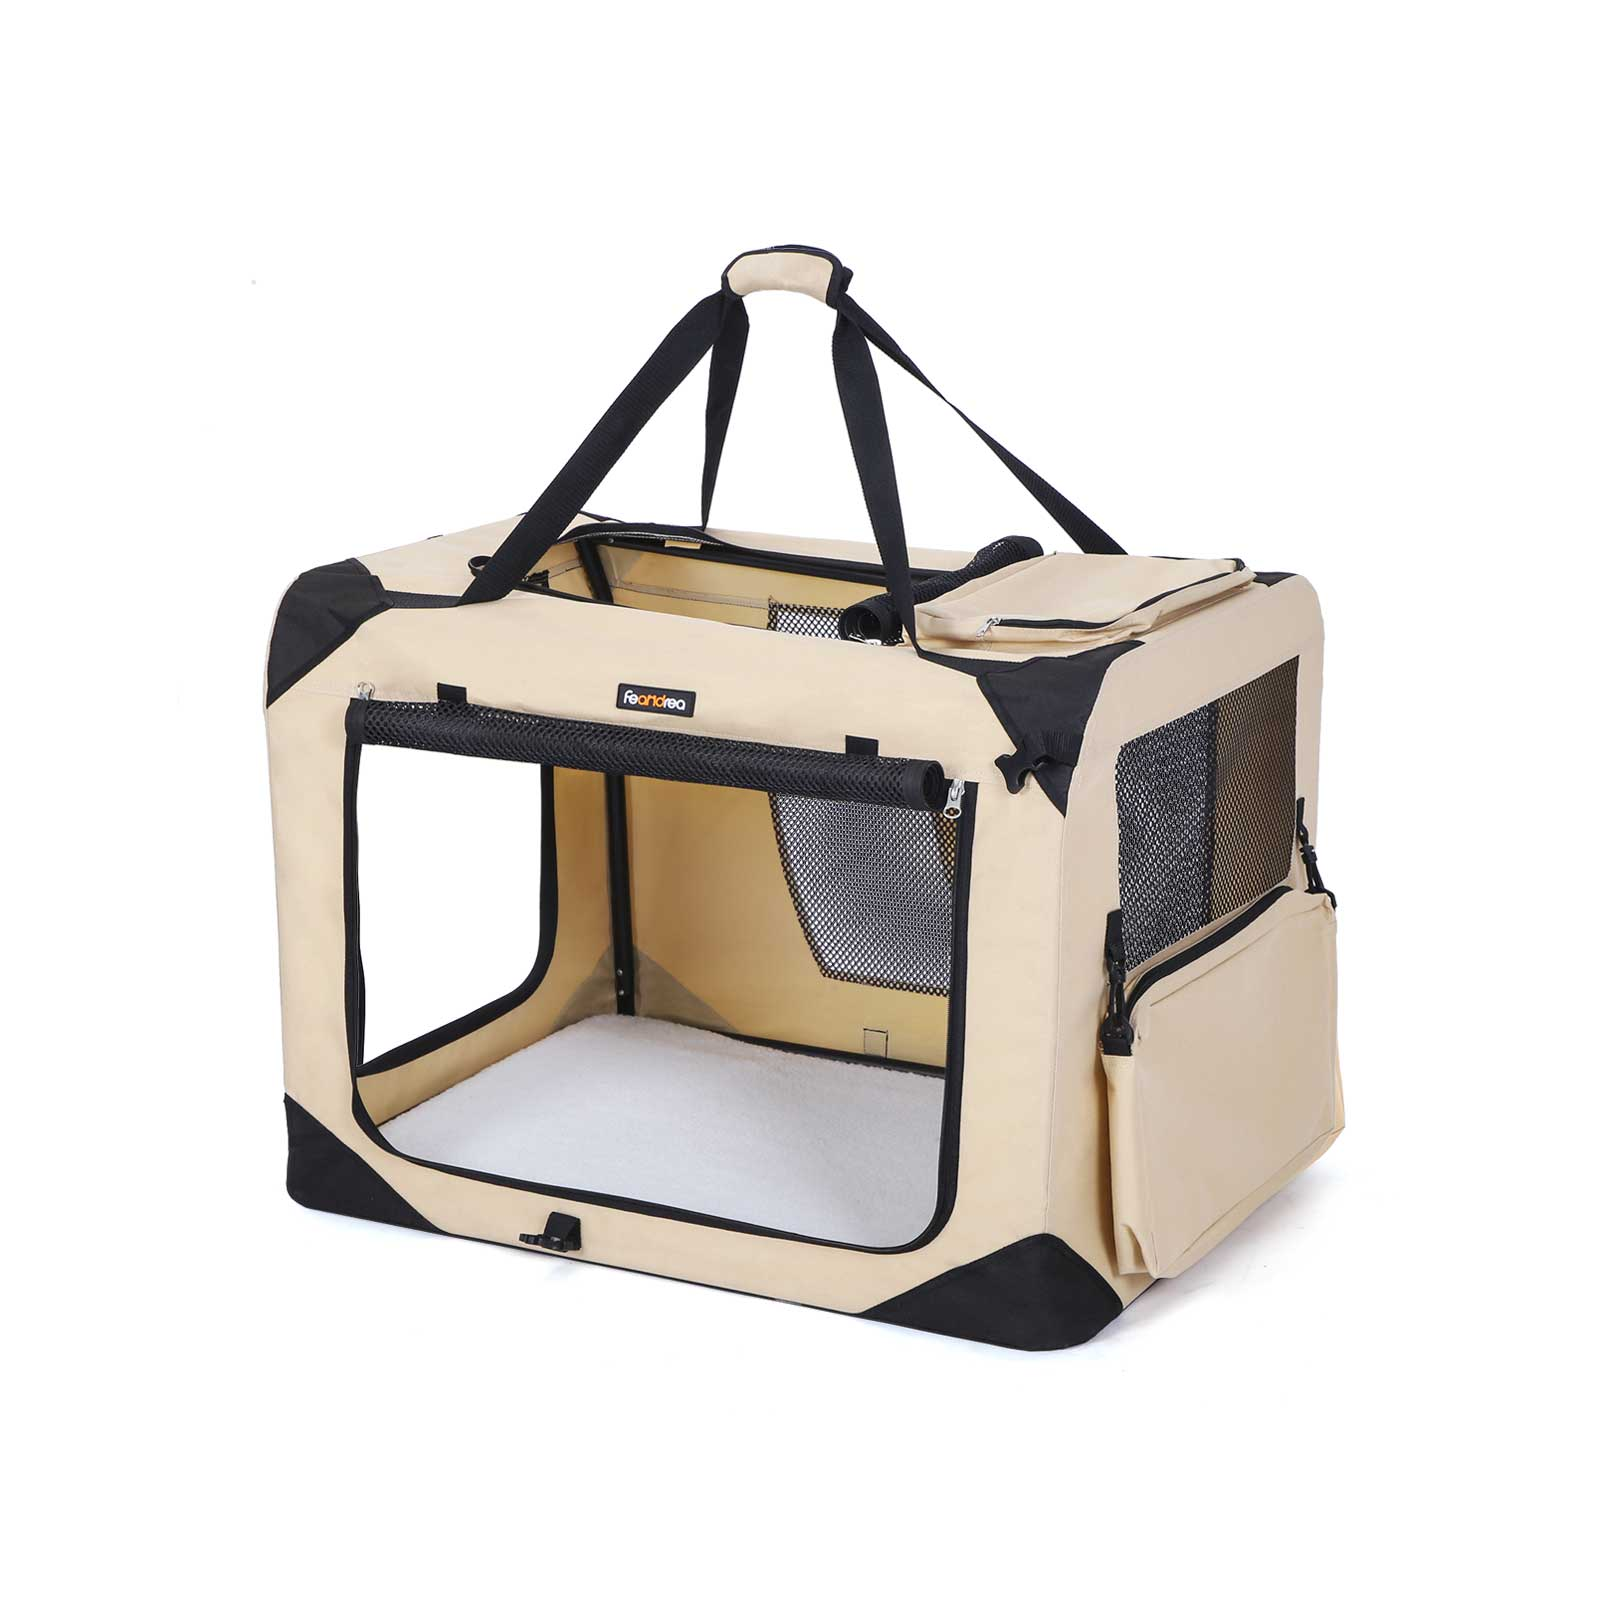 FEANDREA Sac de transport 60 x 40 x 40 cm beige